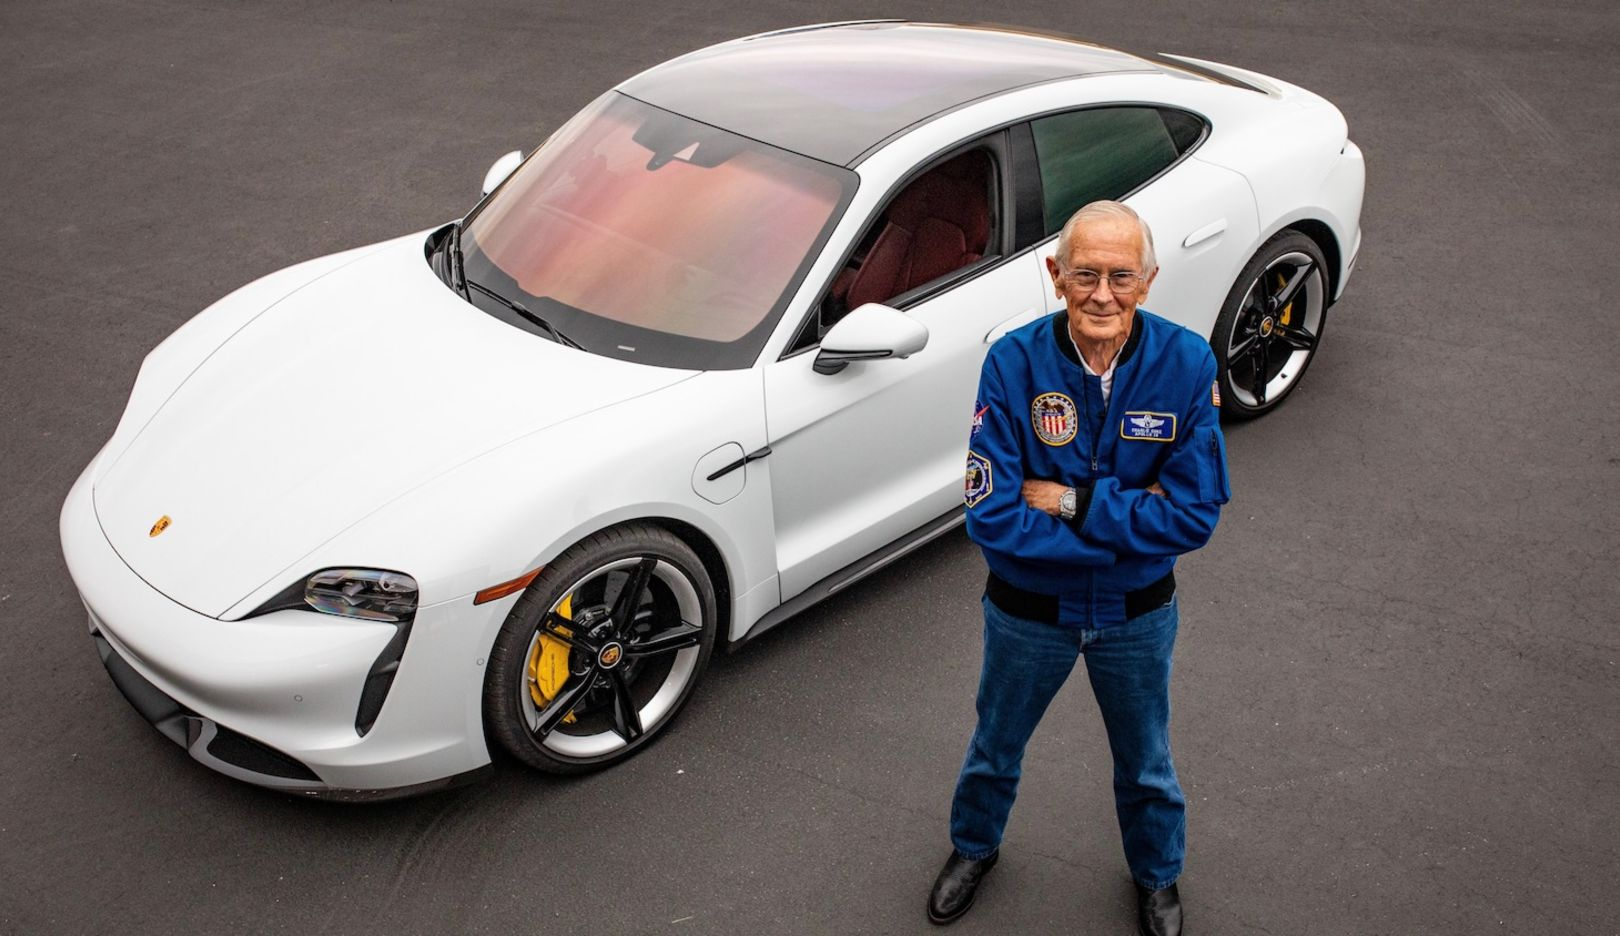 A spaceman's first electric drive on earth